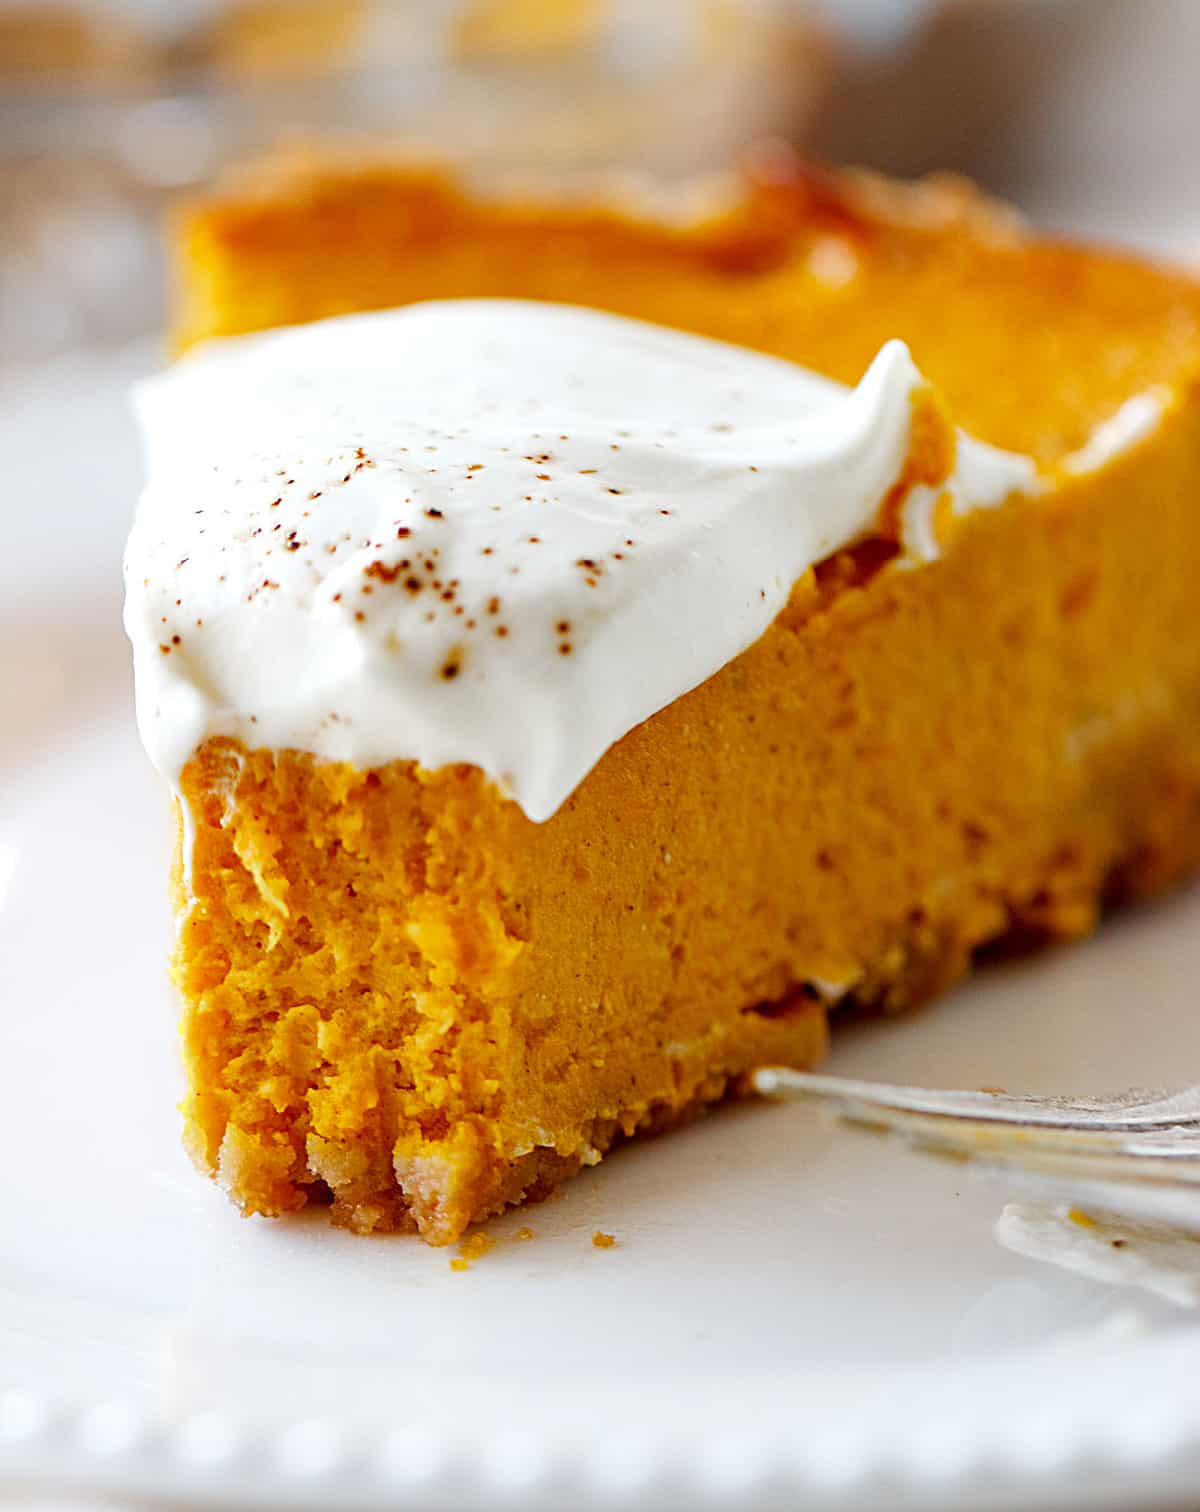 Close-up of eaten pumpkin pie slice, cream on top, tip of silver fork showing